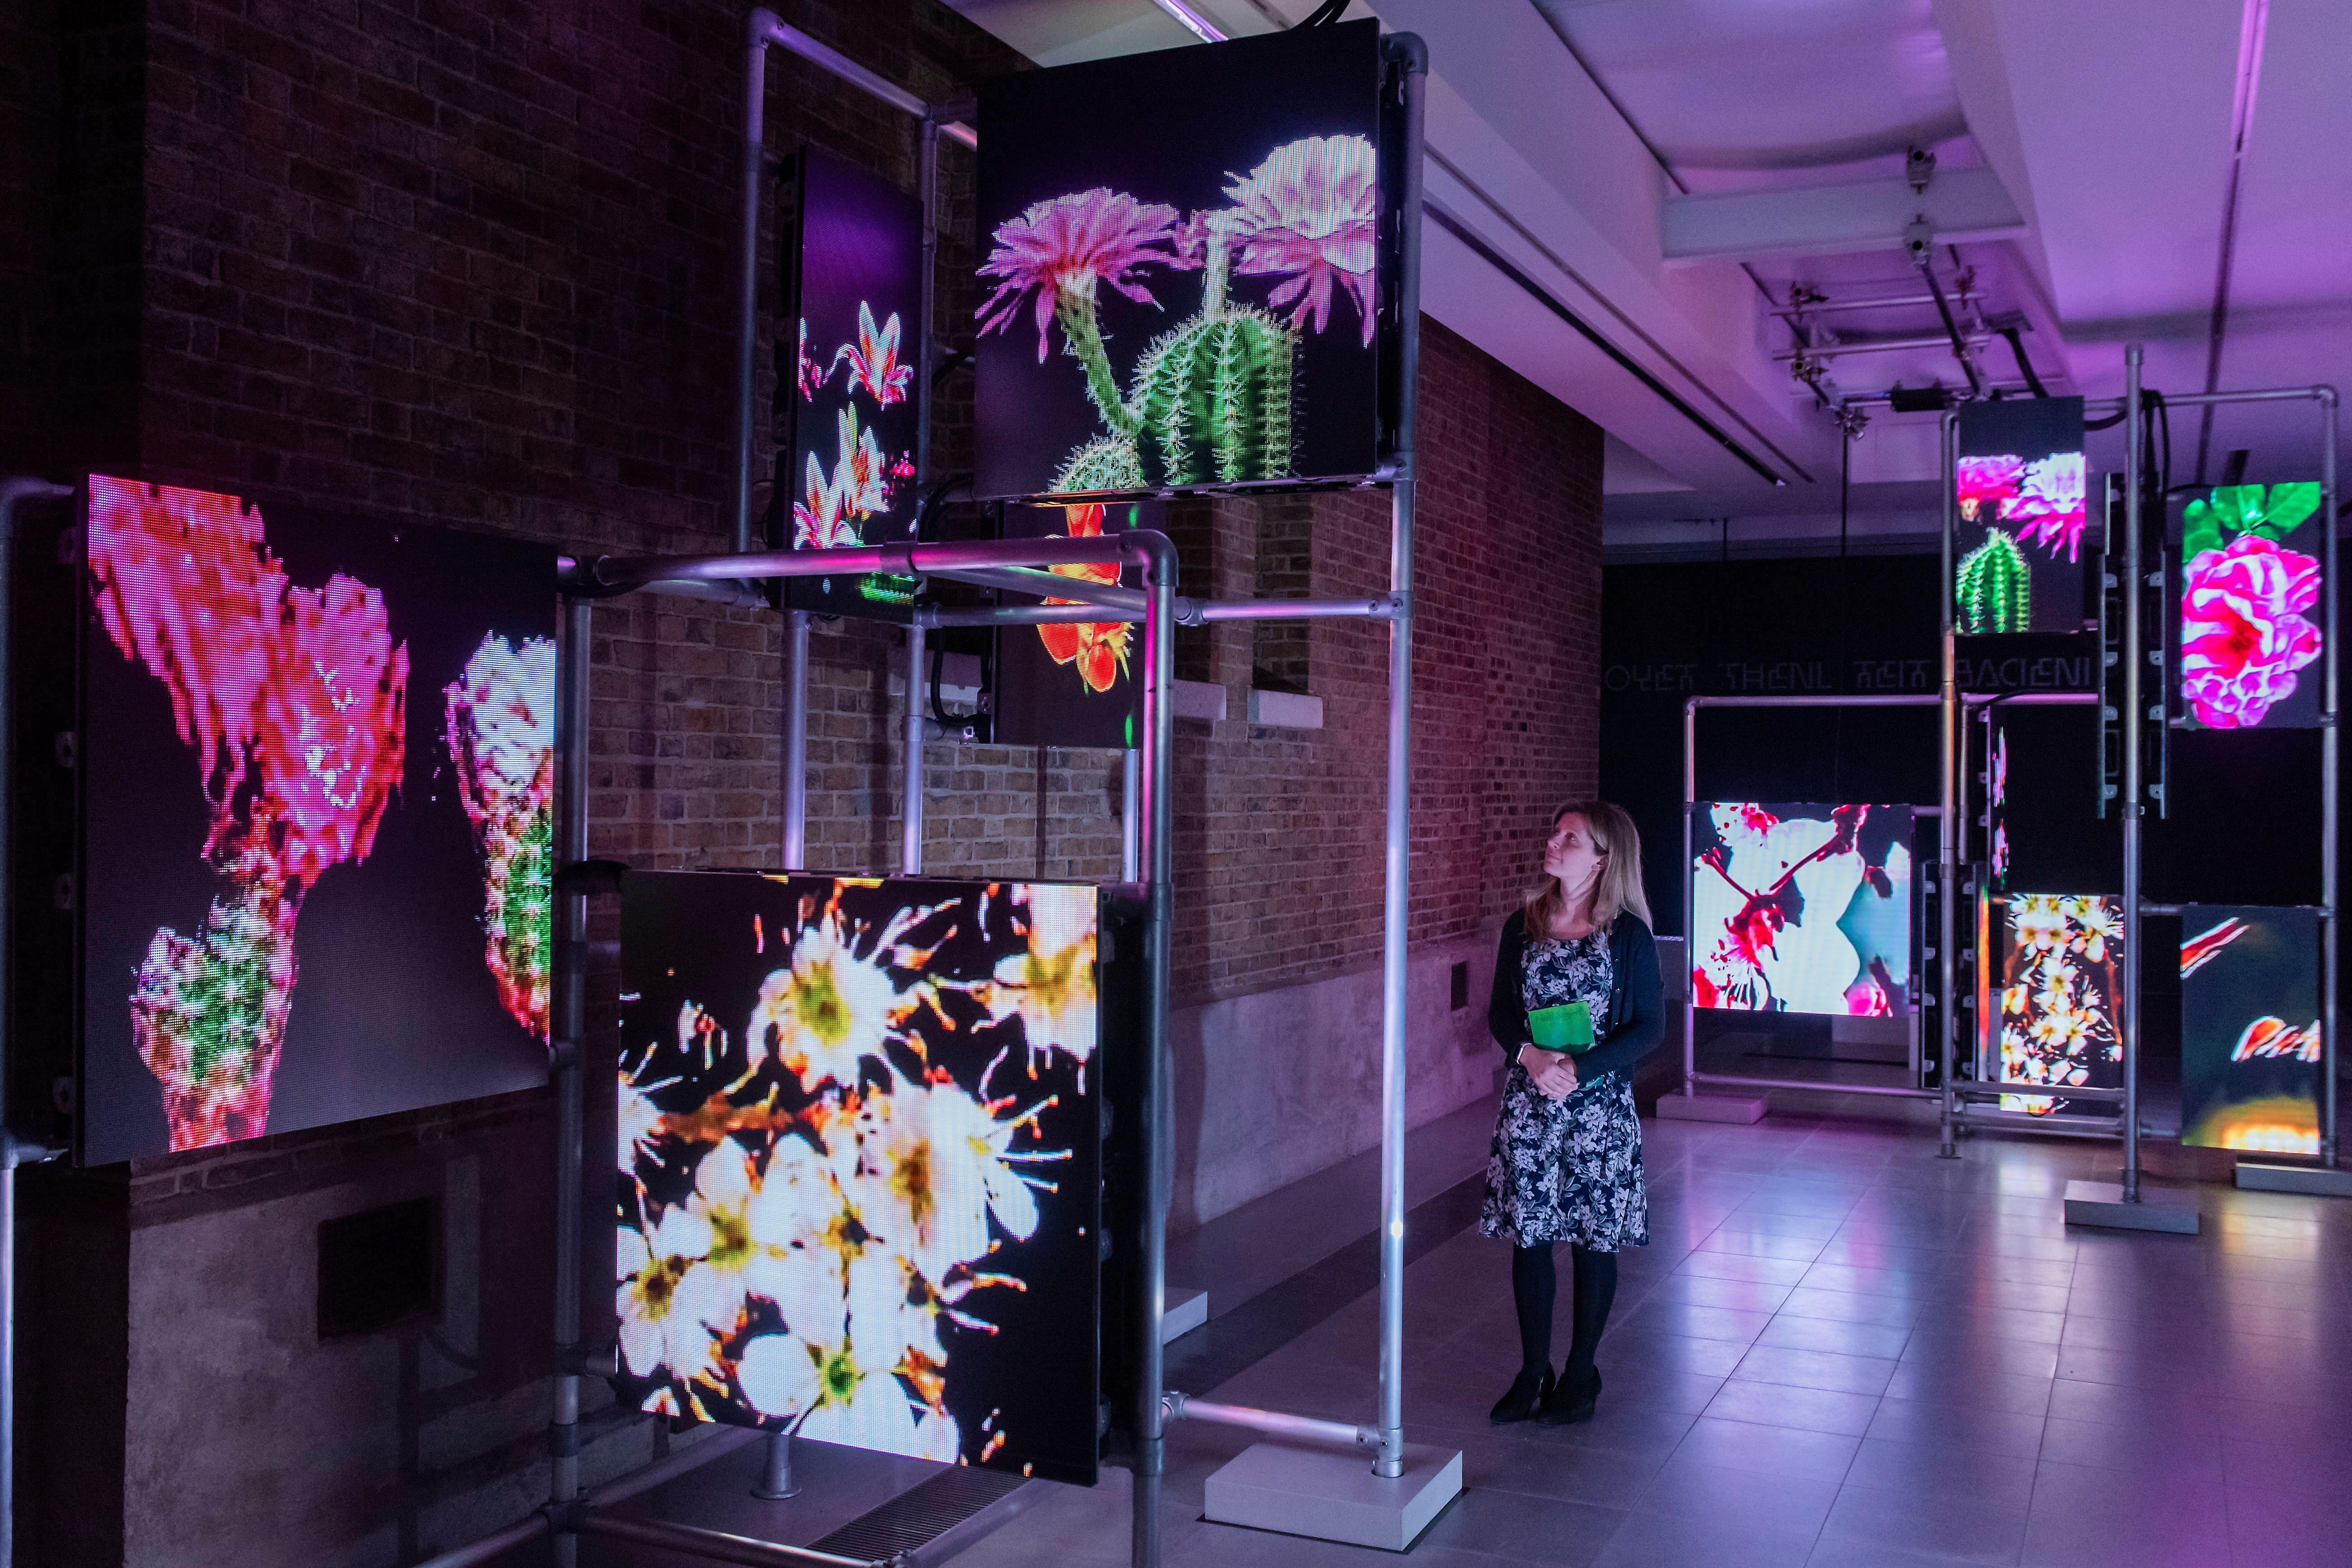 Hito Steyerl: Power Plants review – all a bit tiresome